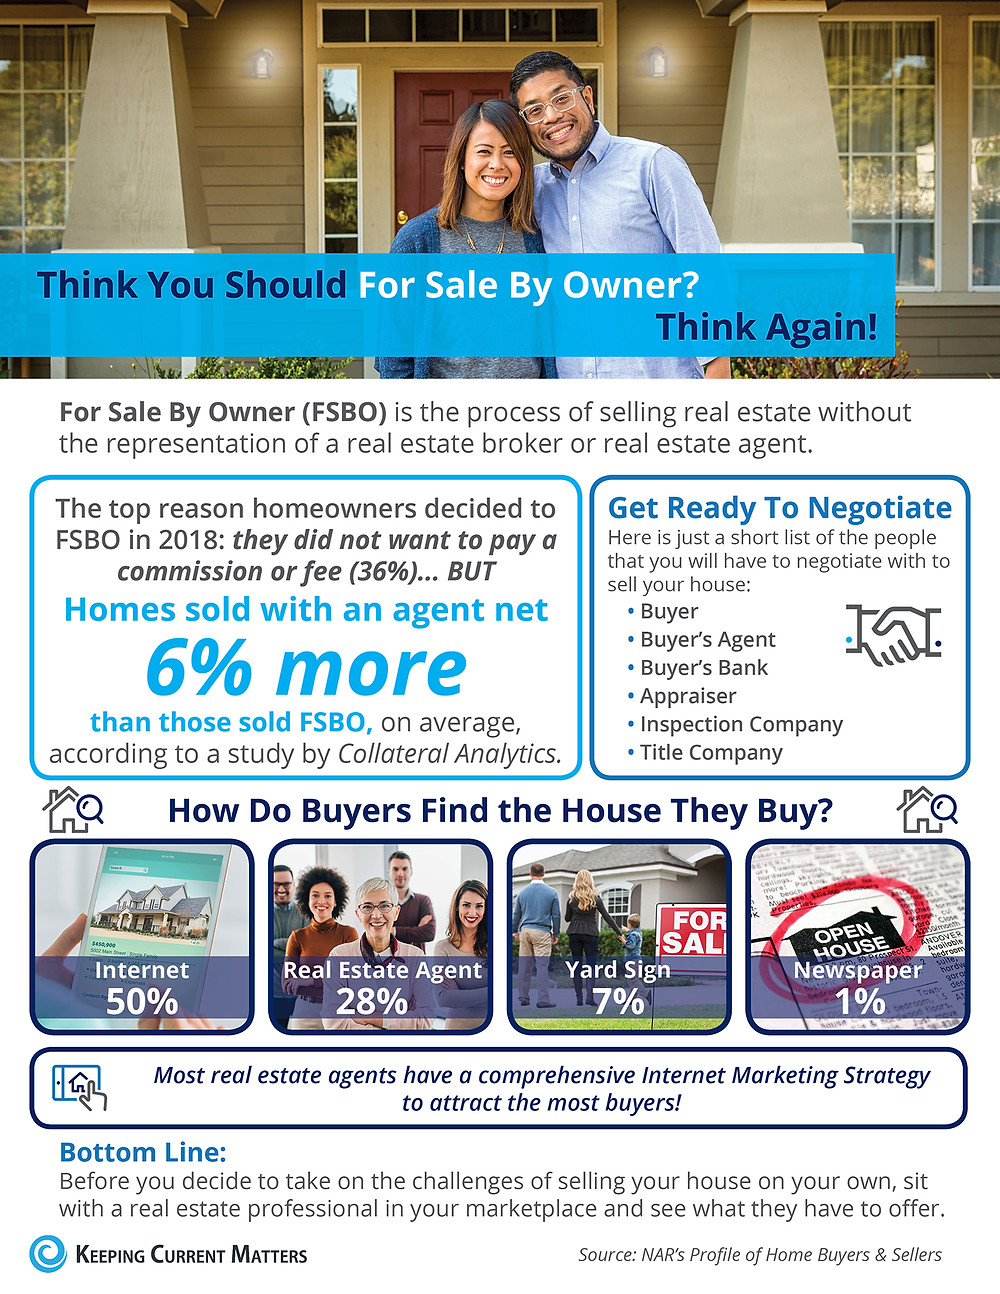 Think You Should For Sale By Owner? Think Again! [INFOGRAPHIC]   Keeping Current Matters